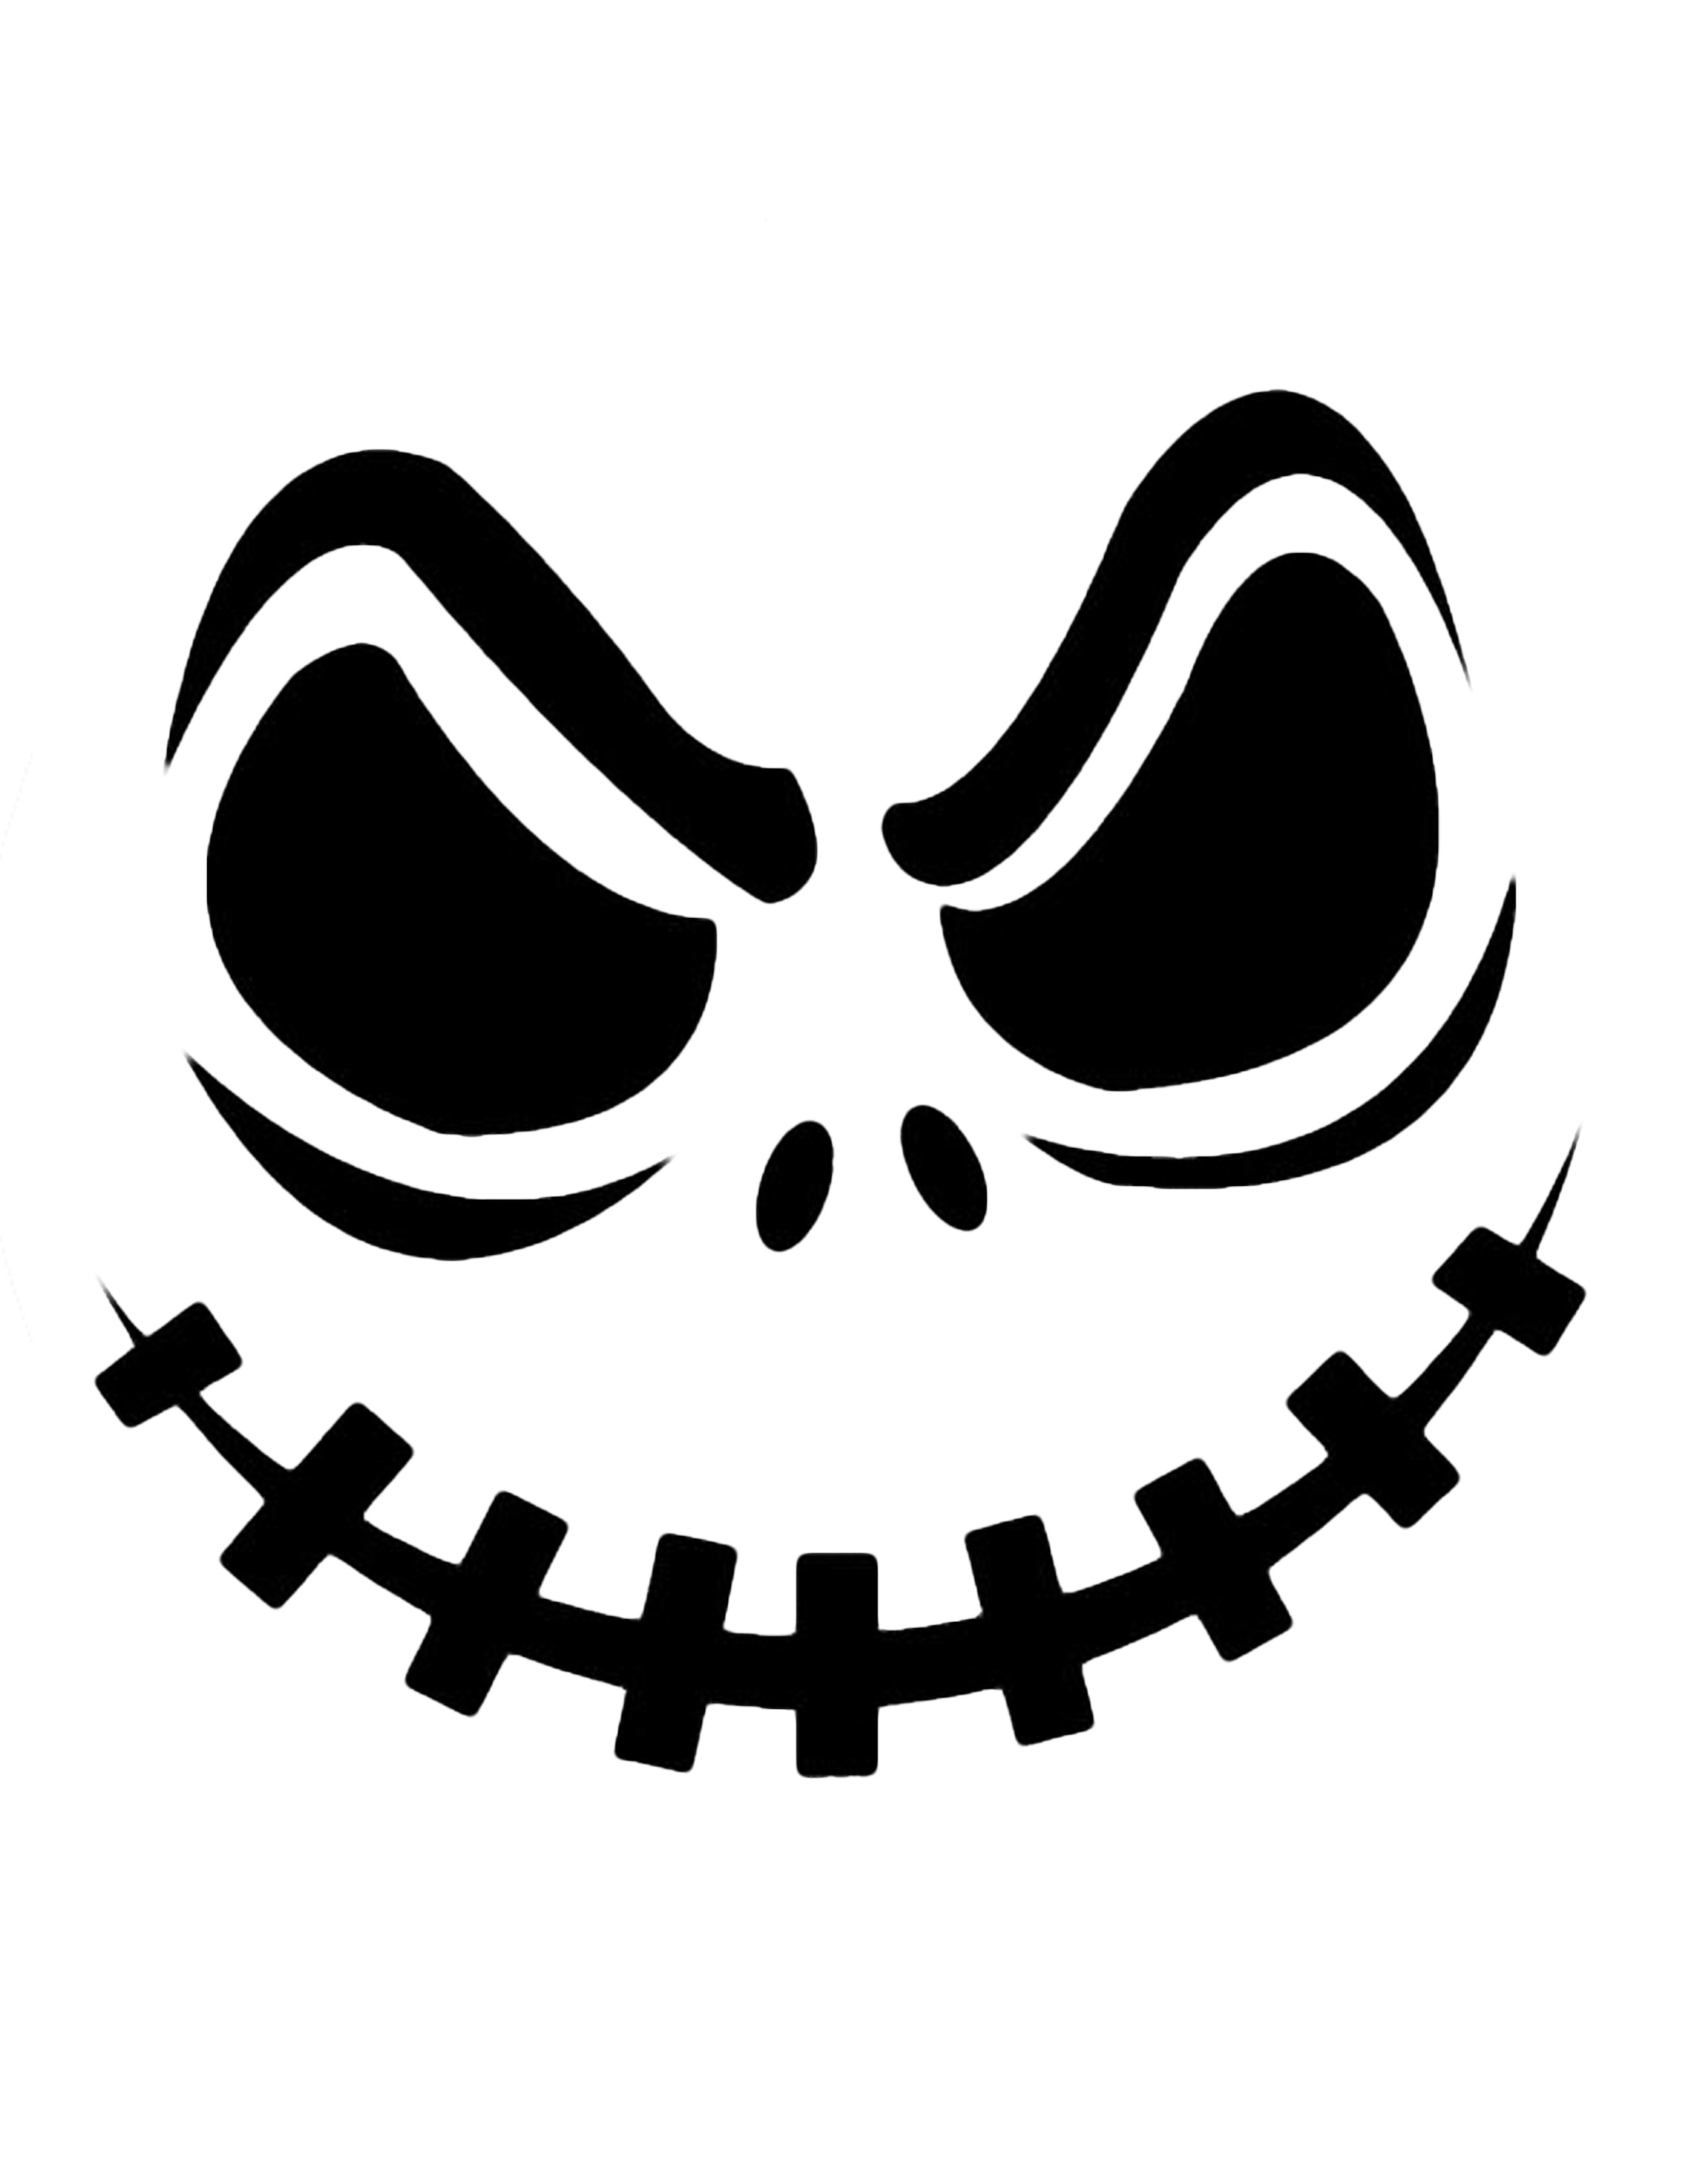 Halloween Scary Clipart.Scary Halloween Clipart Black And White Clipart Best Clipart Best